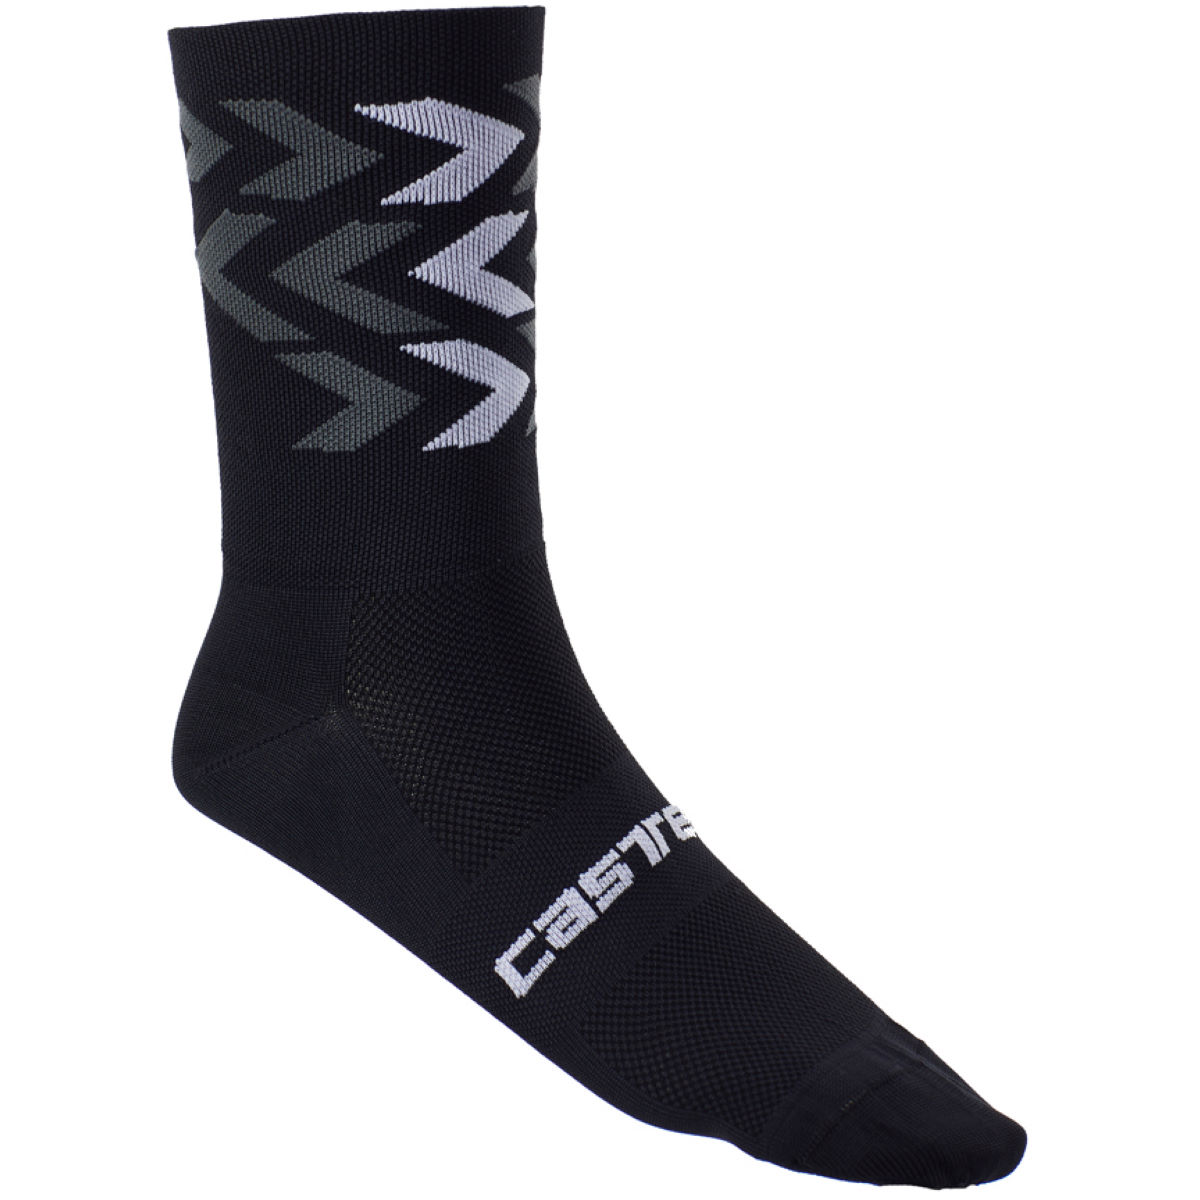 ComprarCastelli Montagna Kit Sock (Limited Edition) - Calcetines